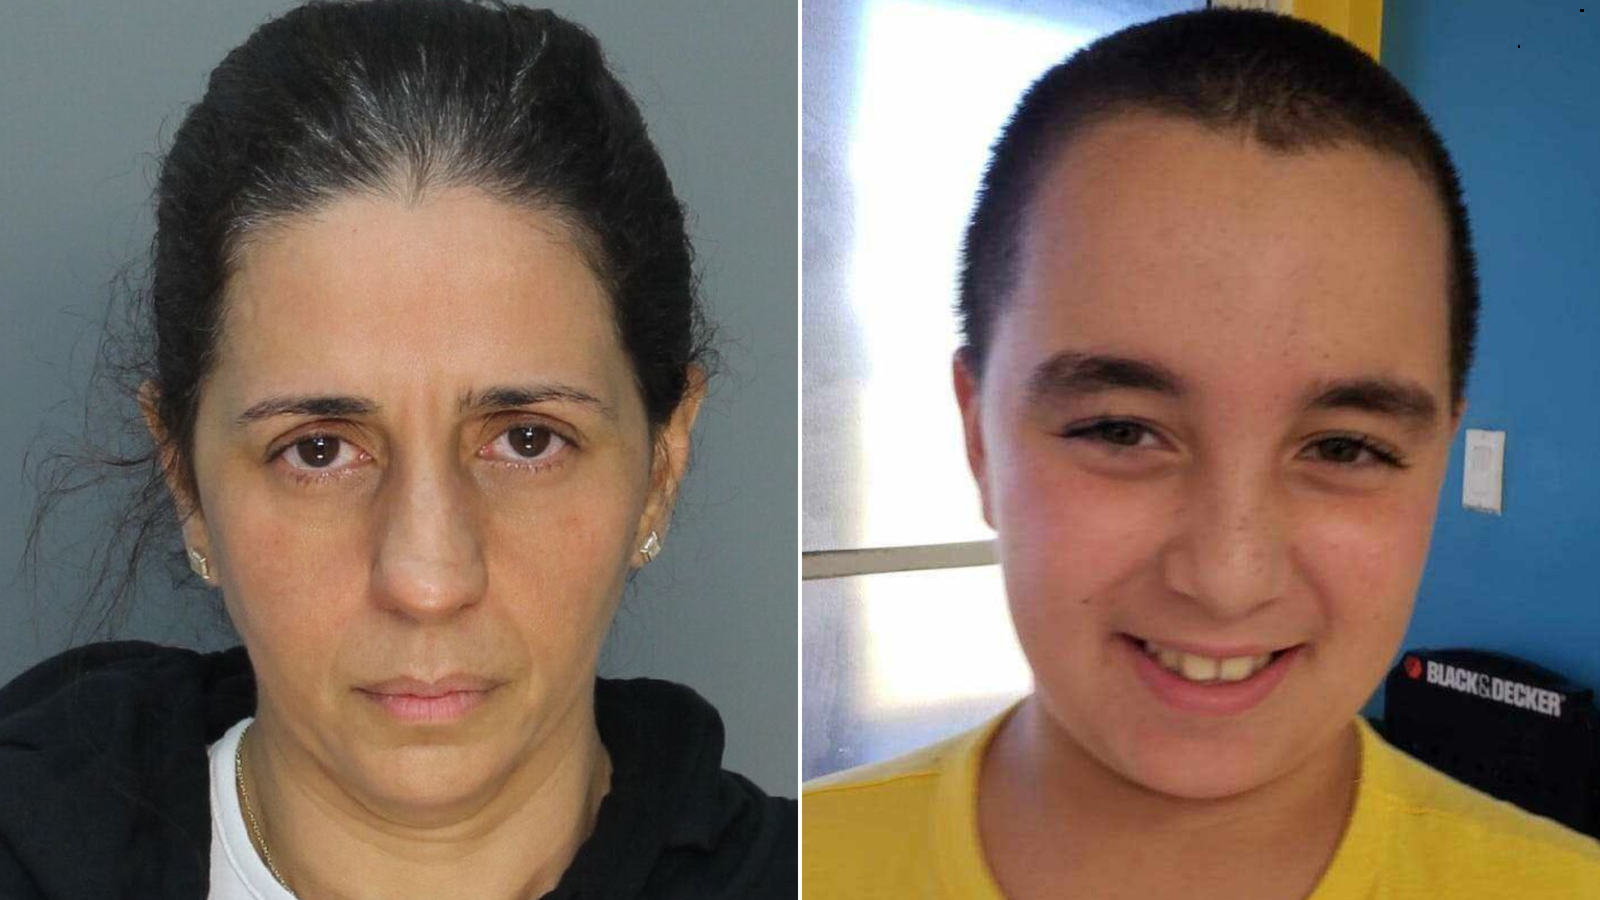 Patricia Ripley, left, faces murder charges in the death of her 9-year-old son, Alejandro, who is pictured on the right. (Miami-Dade Police Department via CNN)